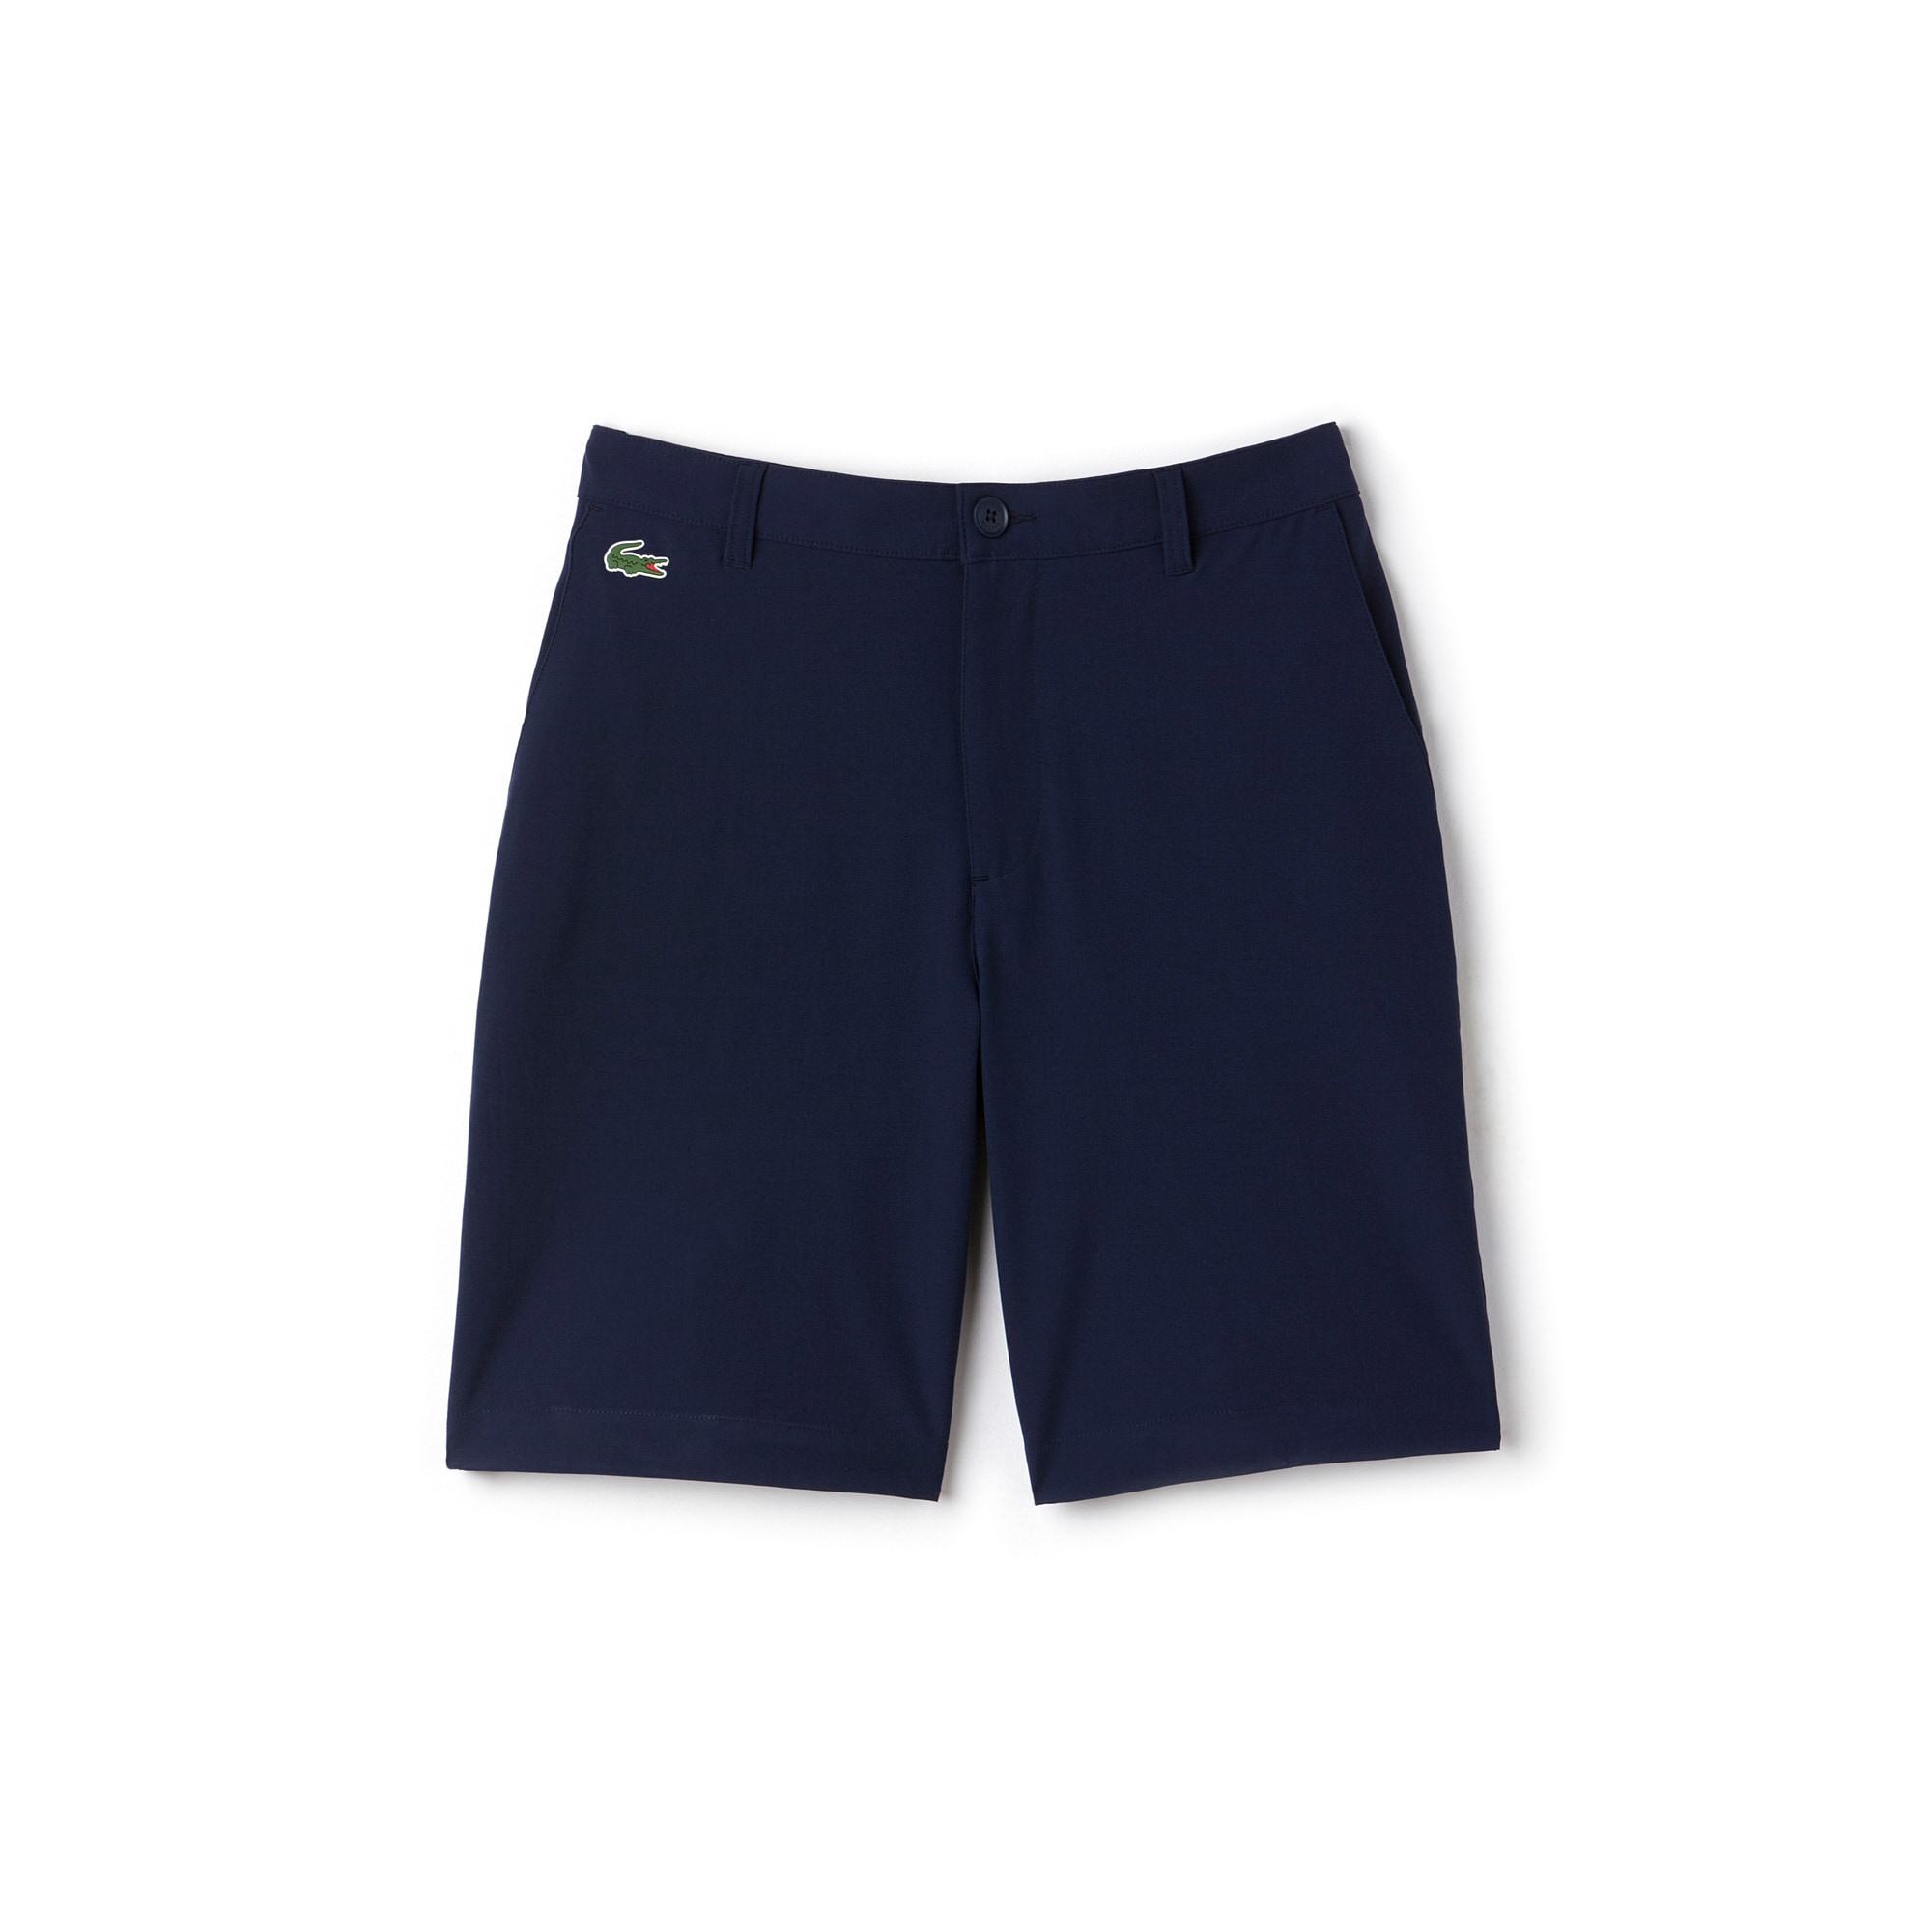 라코스테 Lacoste Mens SPORT Golf Stretch Bermudas,navy blue